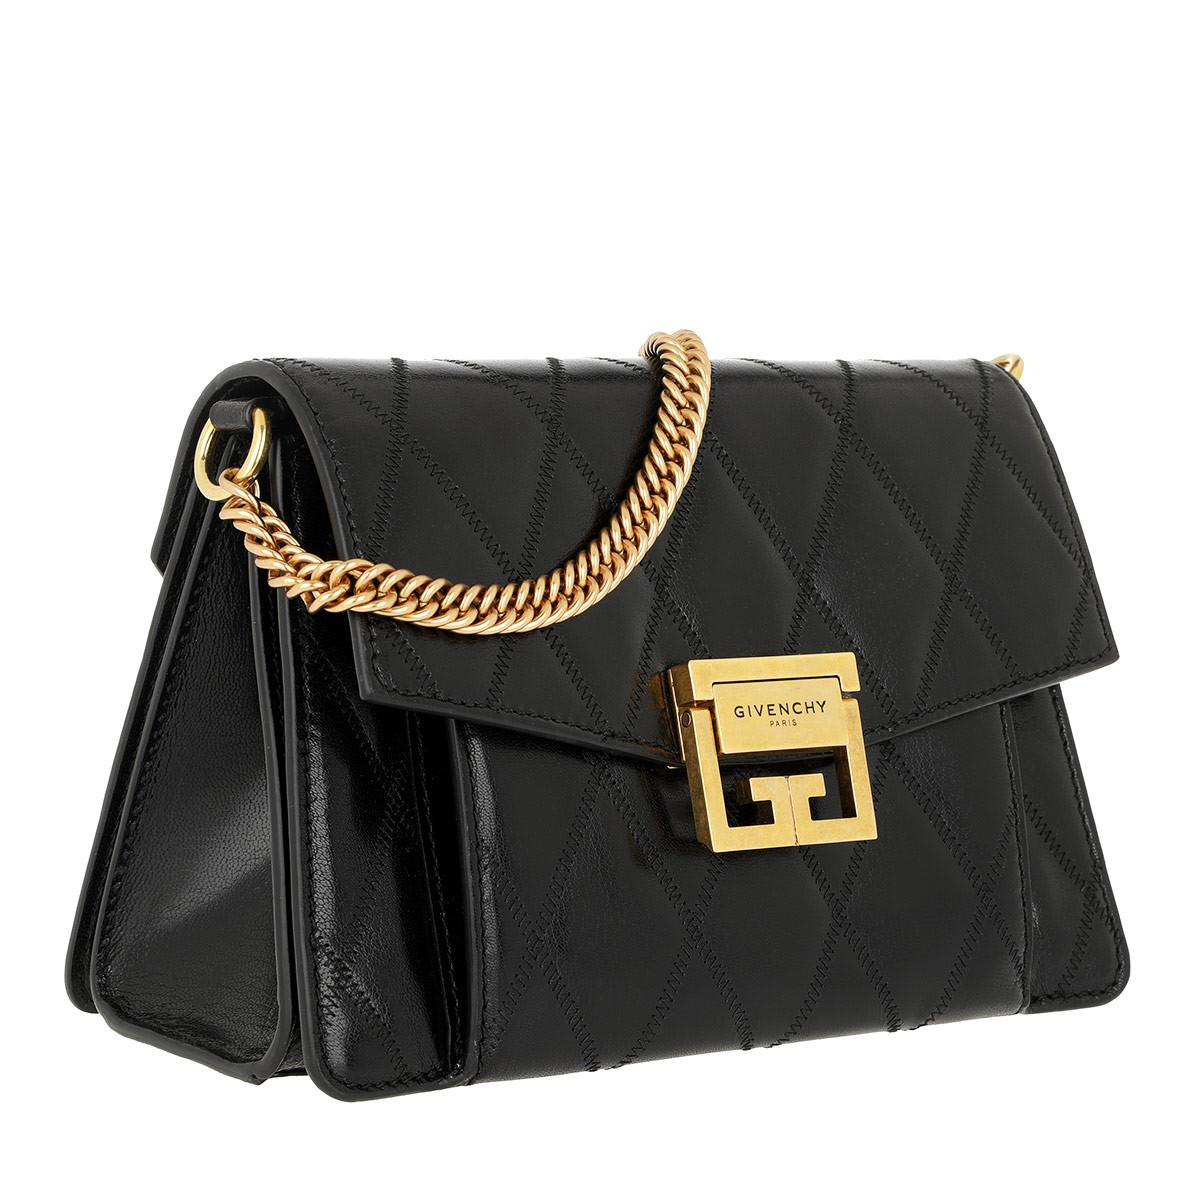 beb9e8d364 Givenchy - Small Gv3 Bag Diamond Quilted Leather Black - Lyst. View  fullscreen